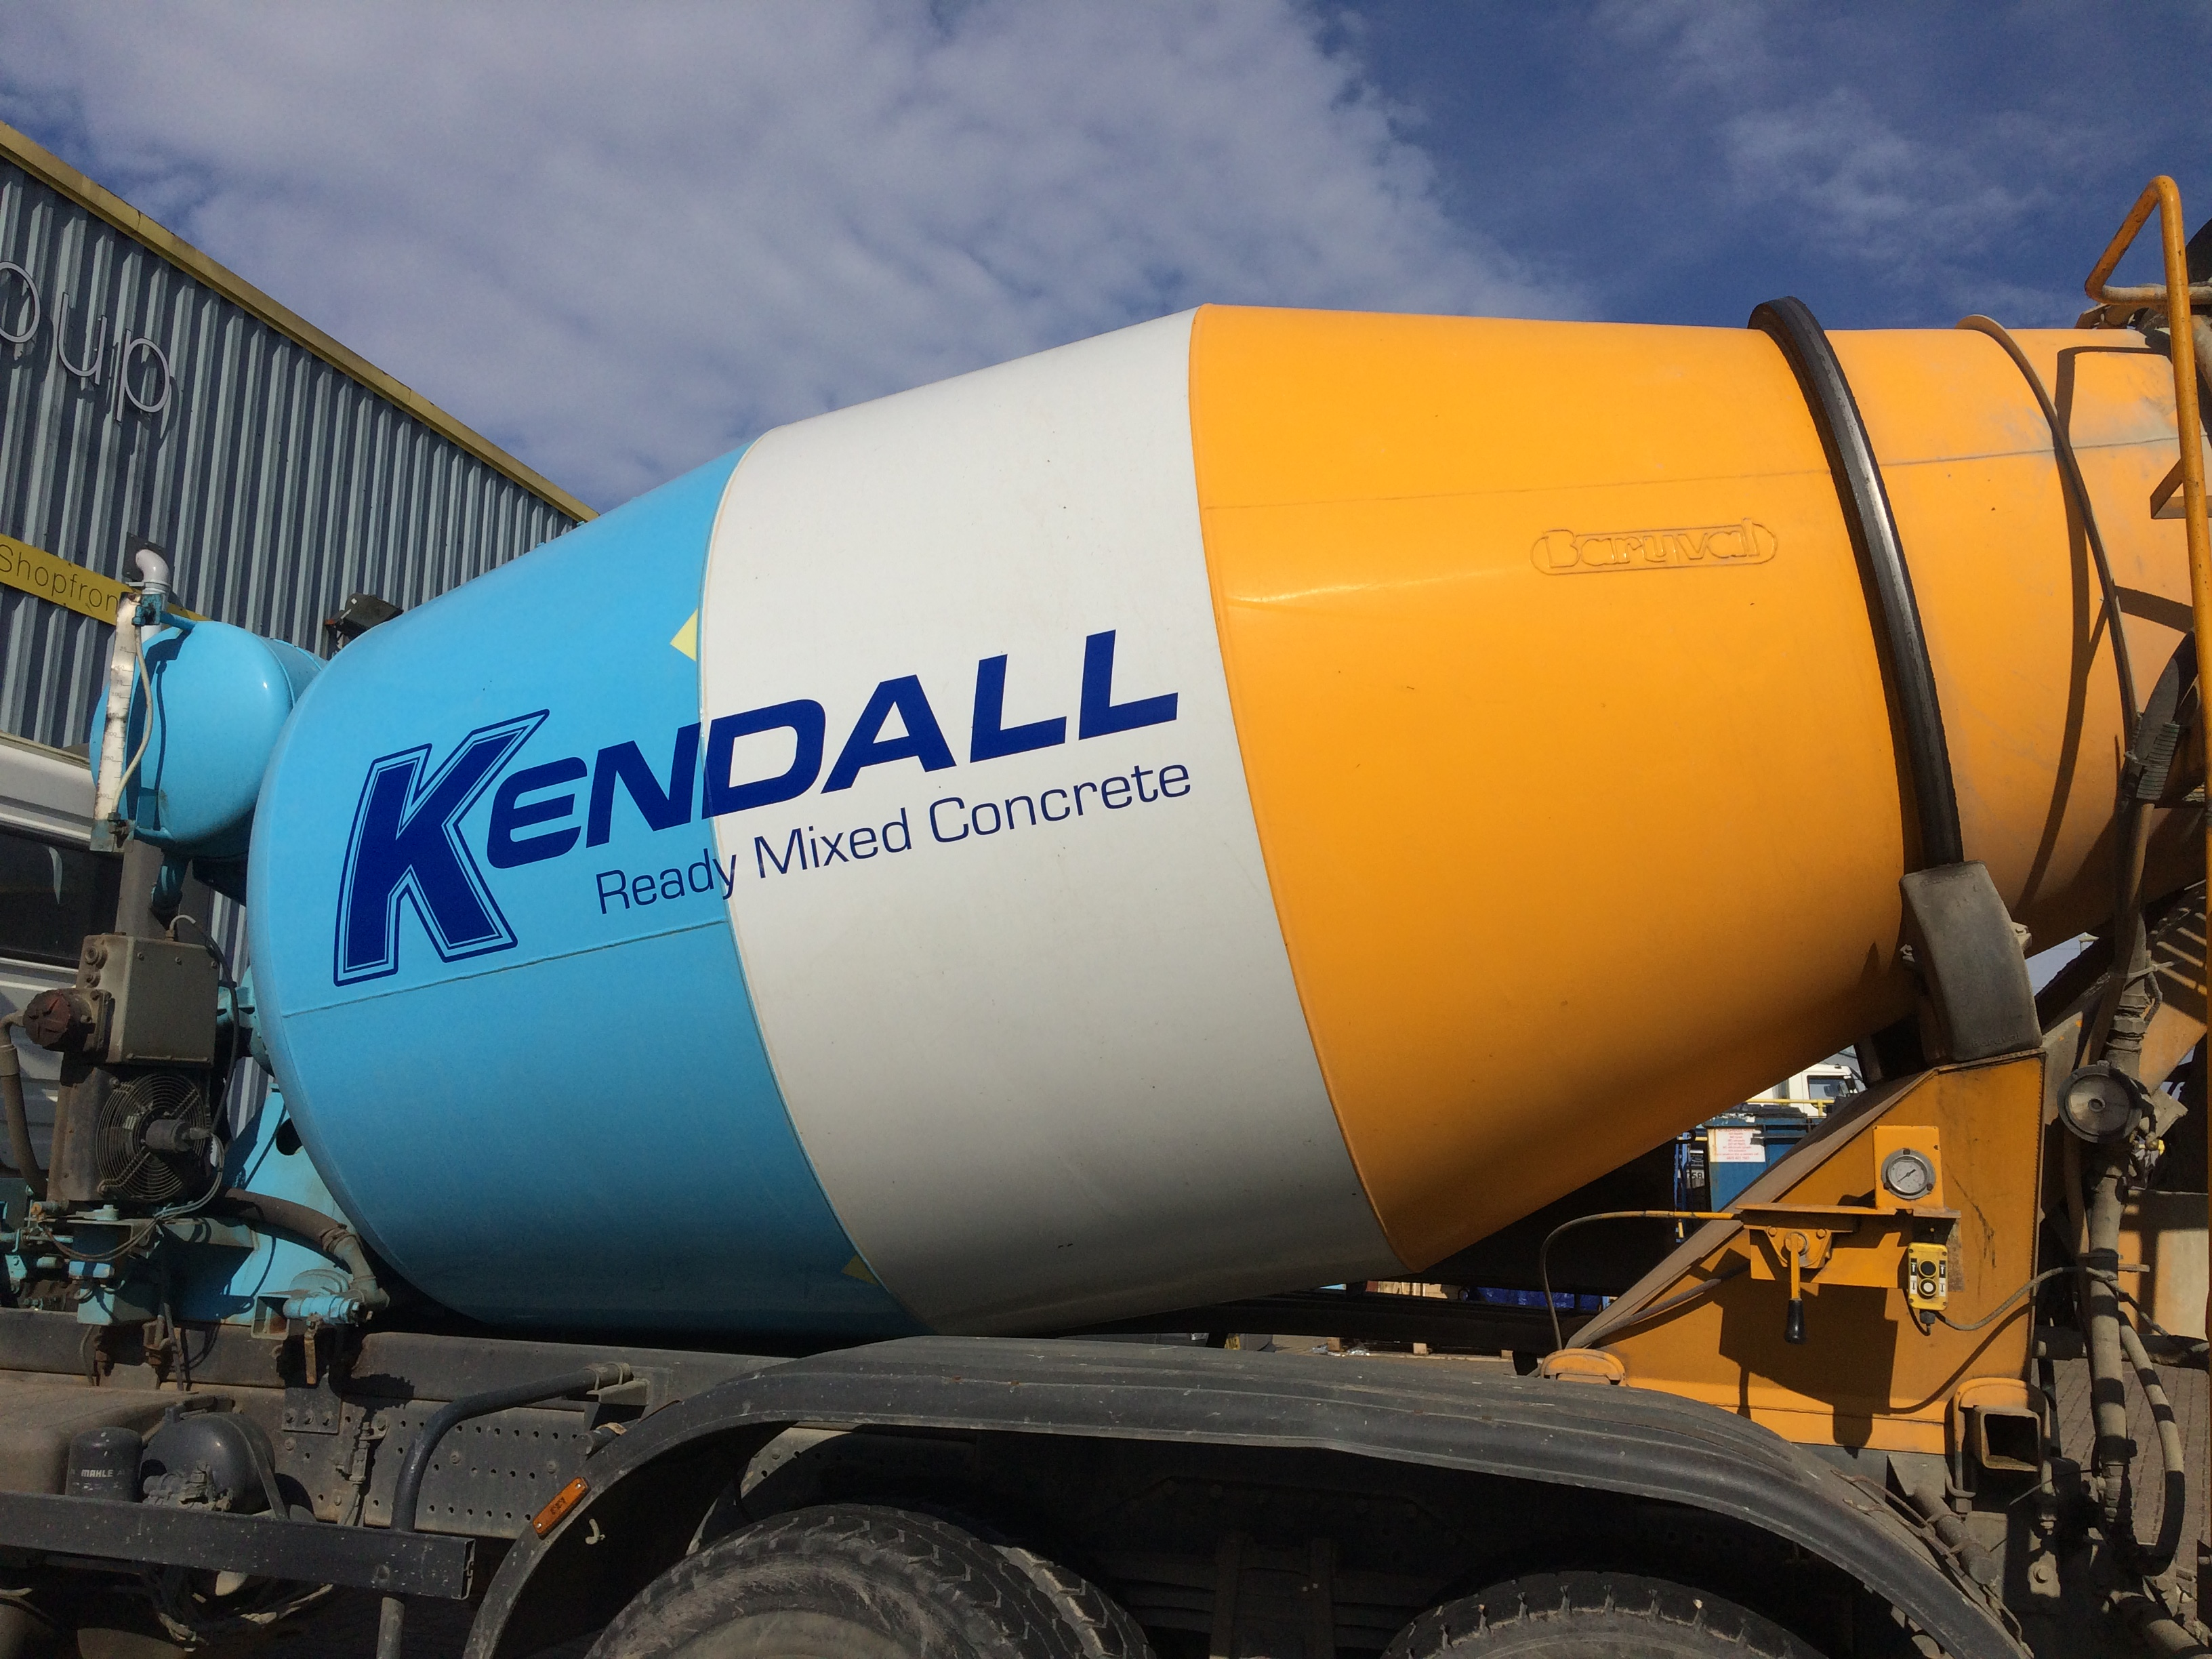 Kendall concrete transports sticker